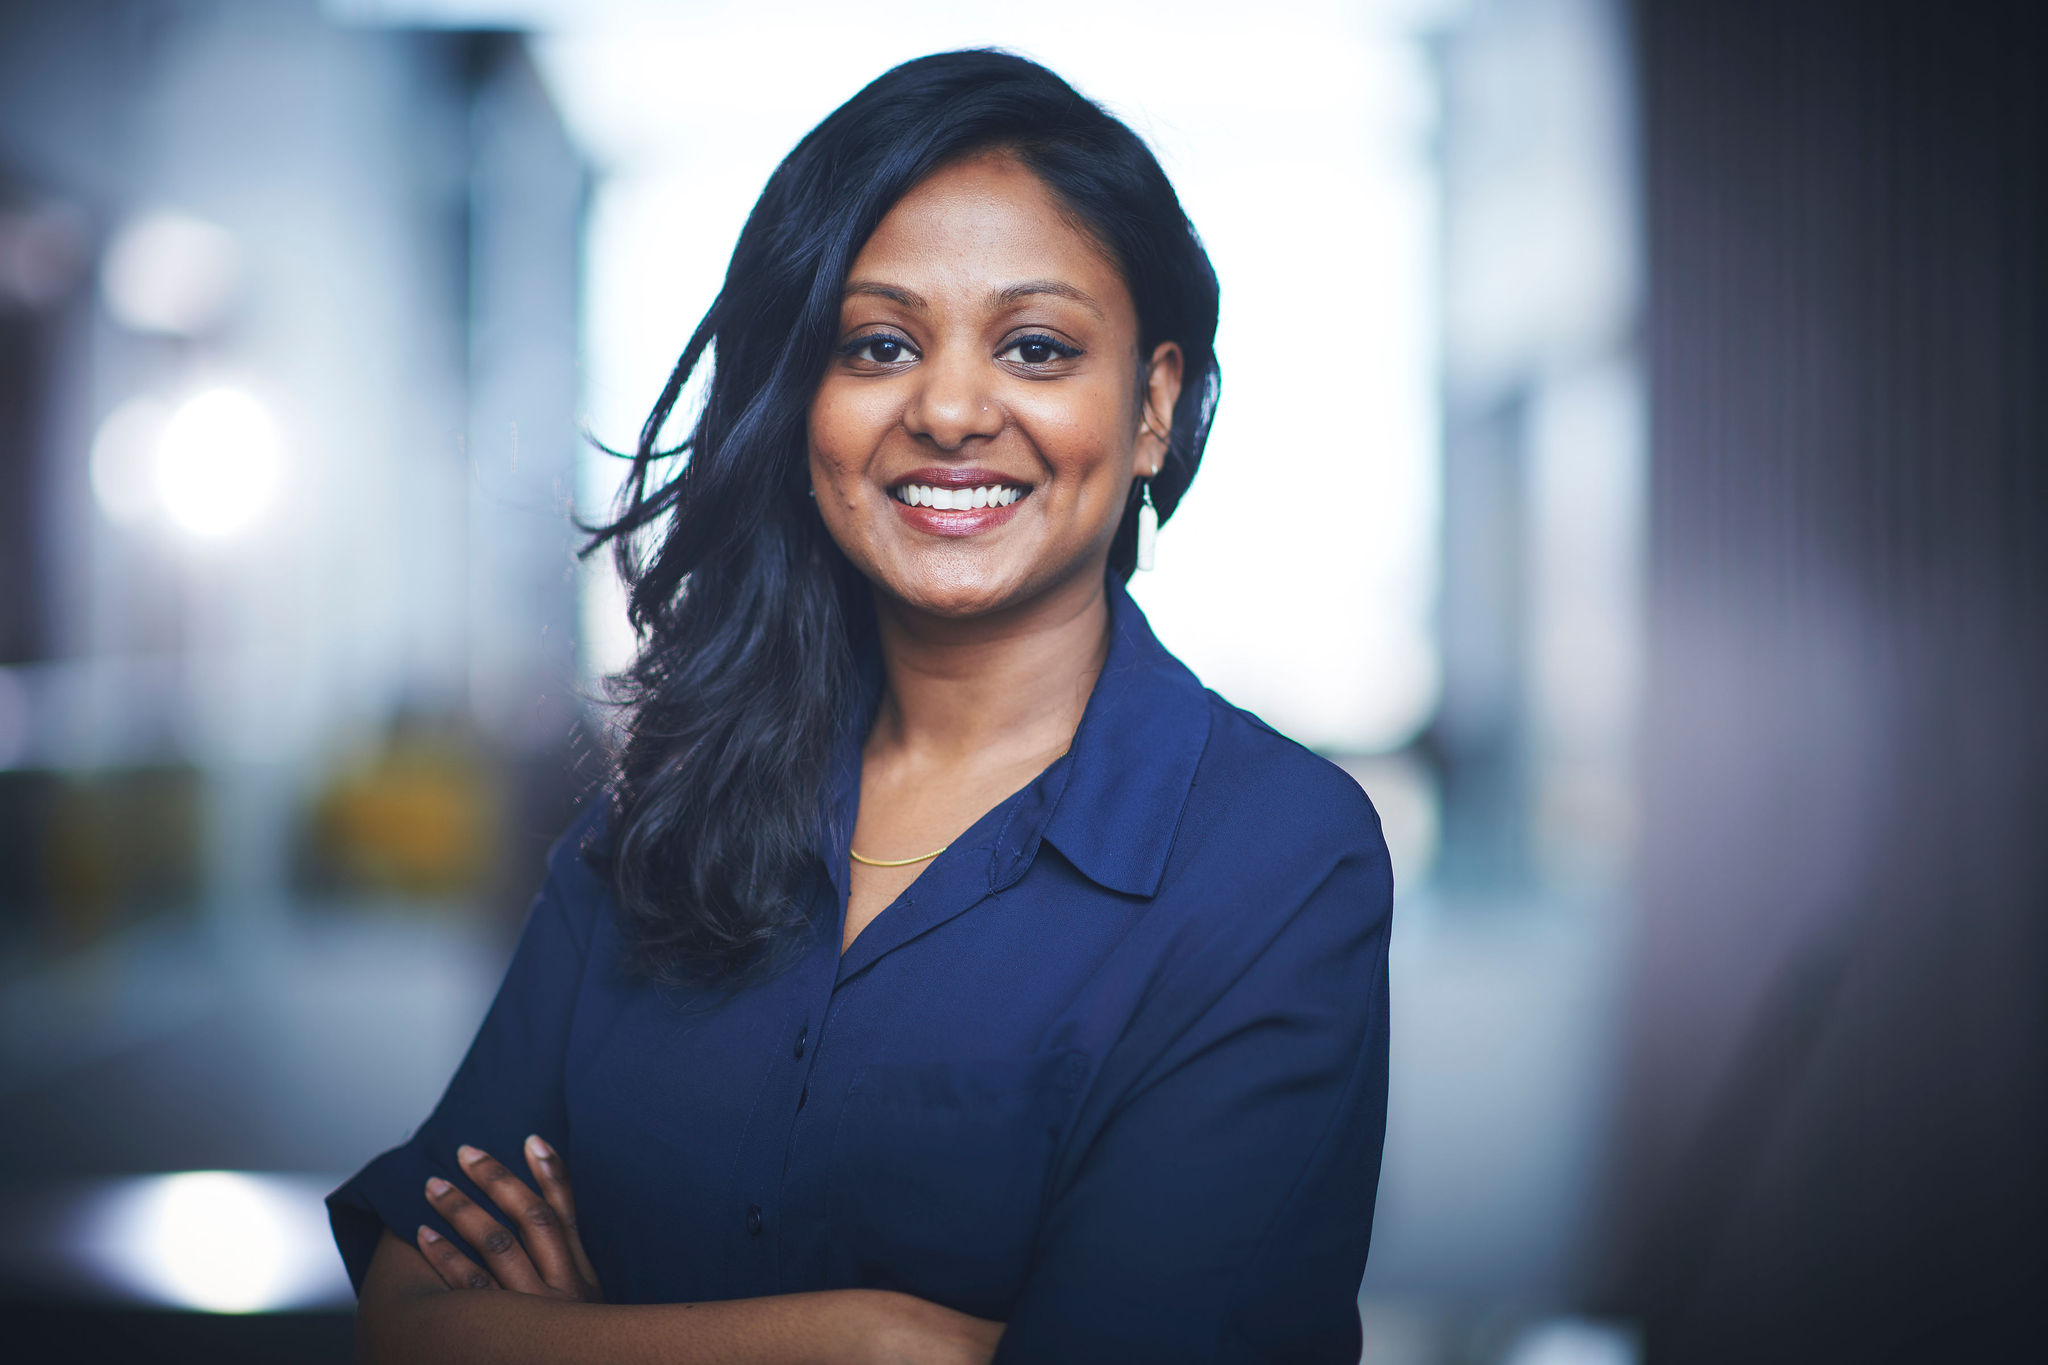 GOBHINA NAGARAJAH - COACH TO VERONICA DYMOND